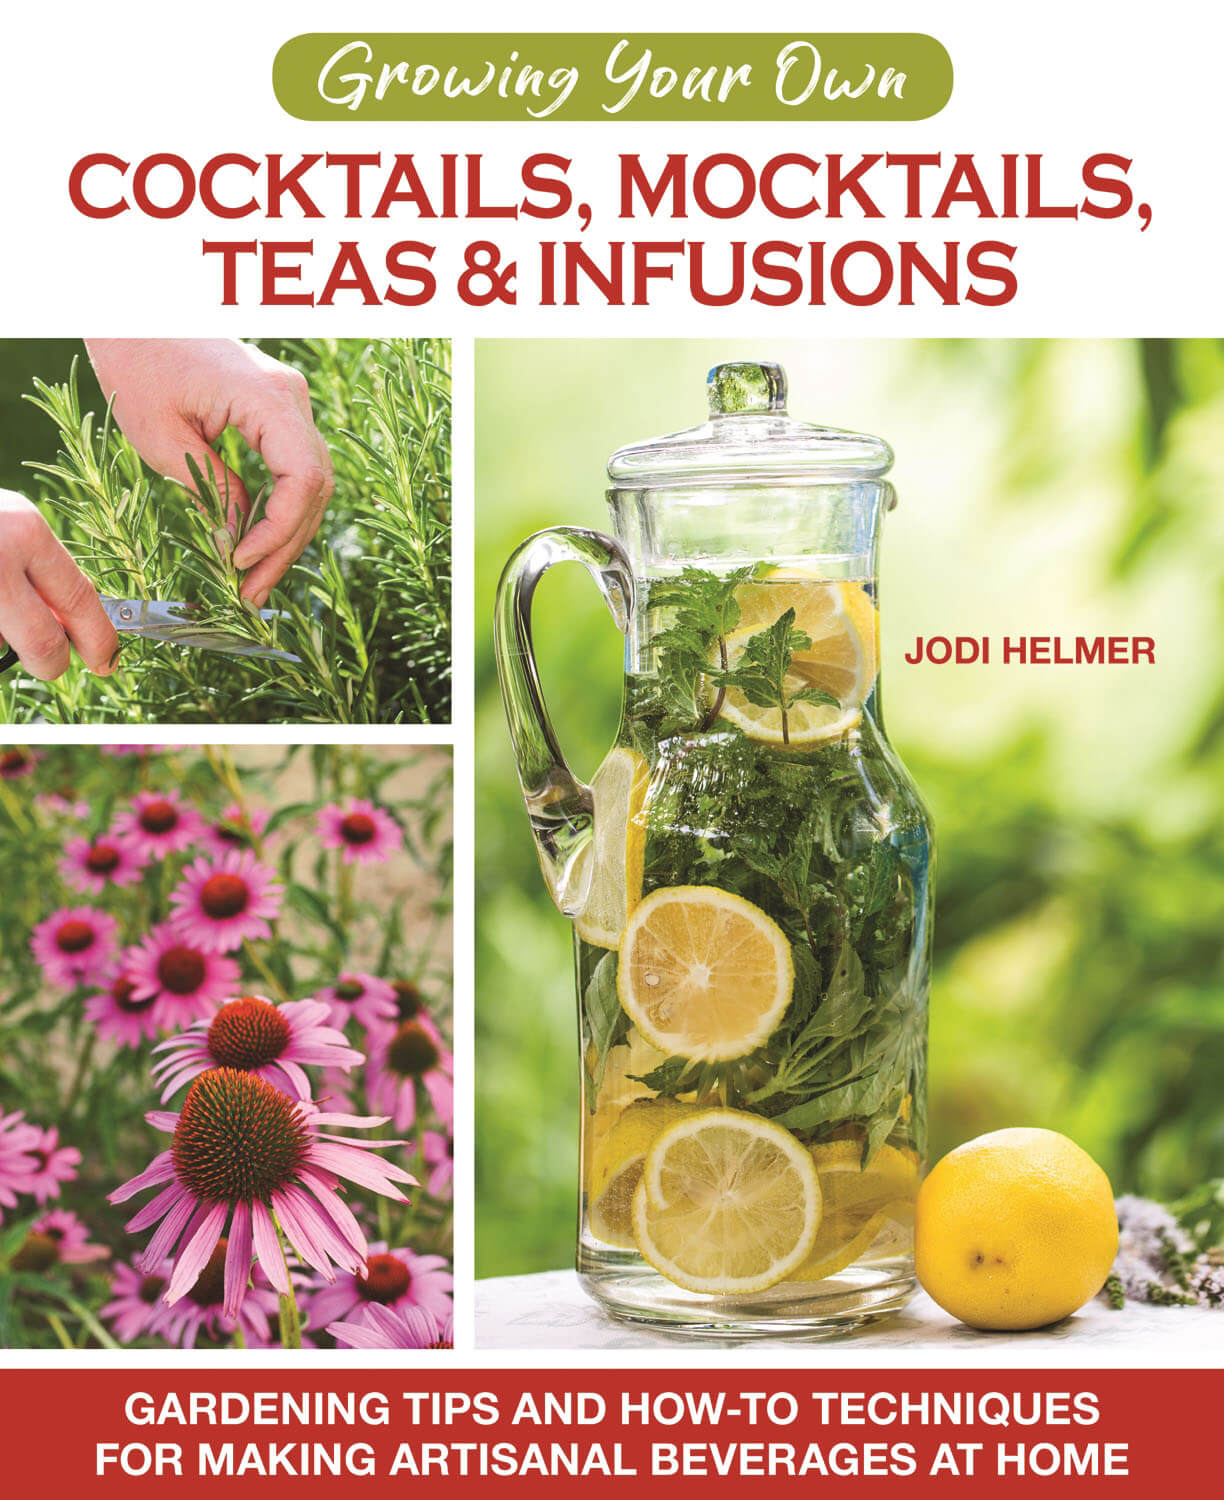 Growing Your Own Cocktails, Mocktails, Teas & Infusions: Gardening Tips and How-To Techniques for Making Artisanal Beverages at Home, book cover